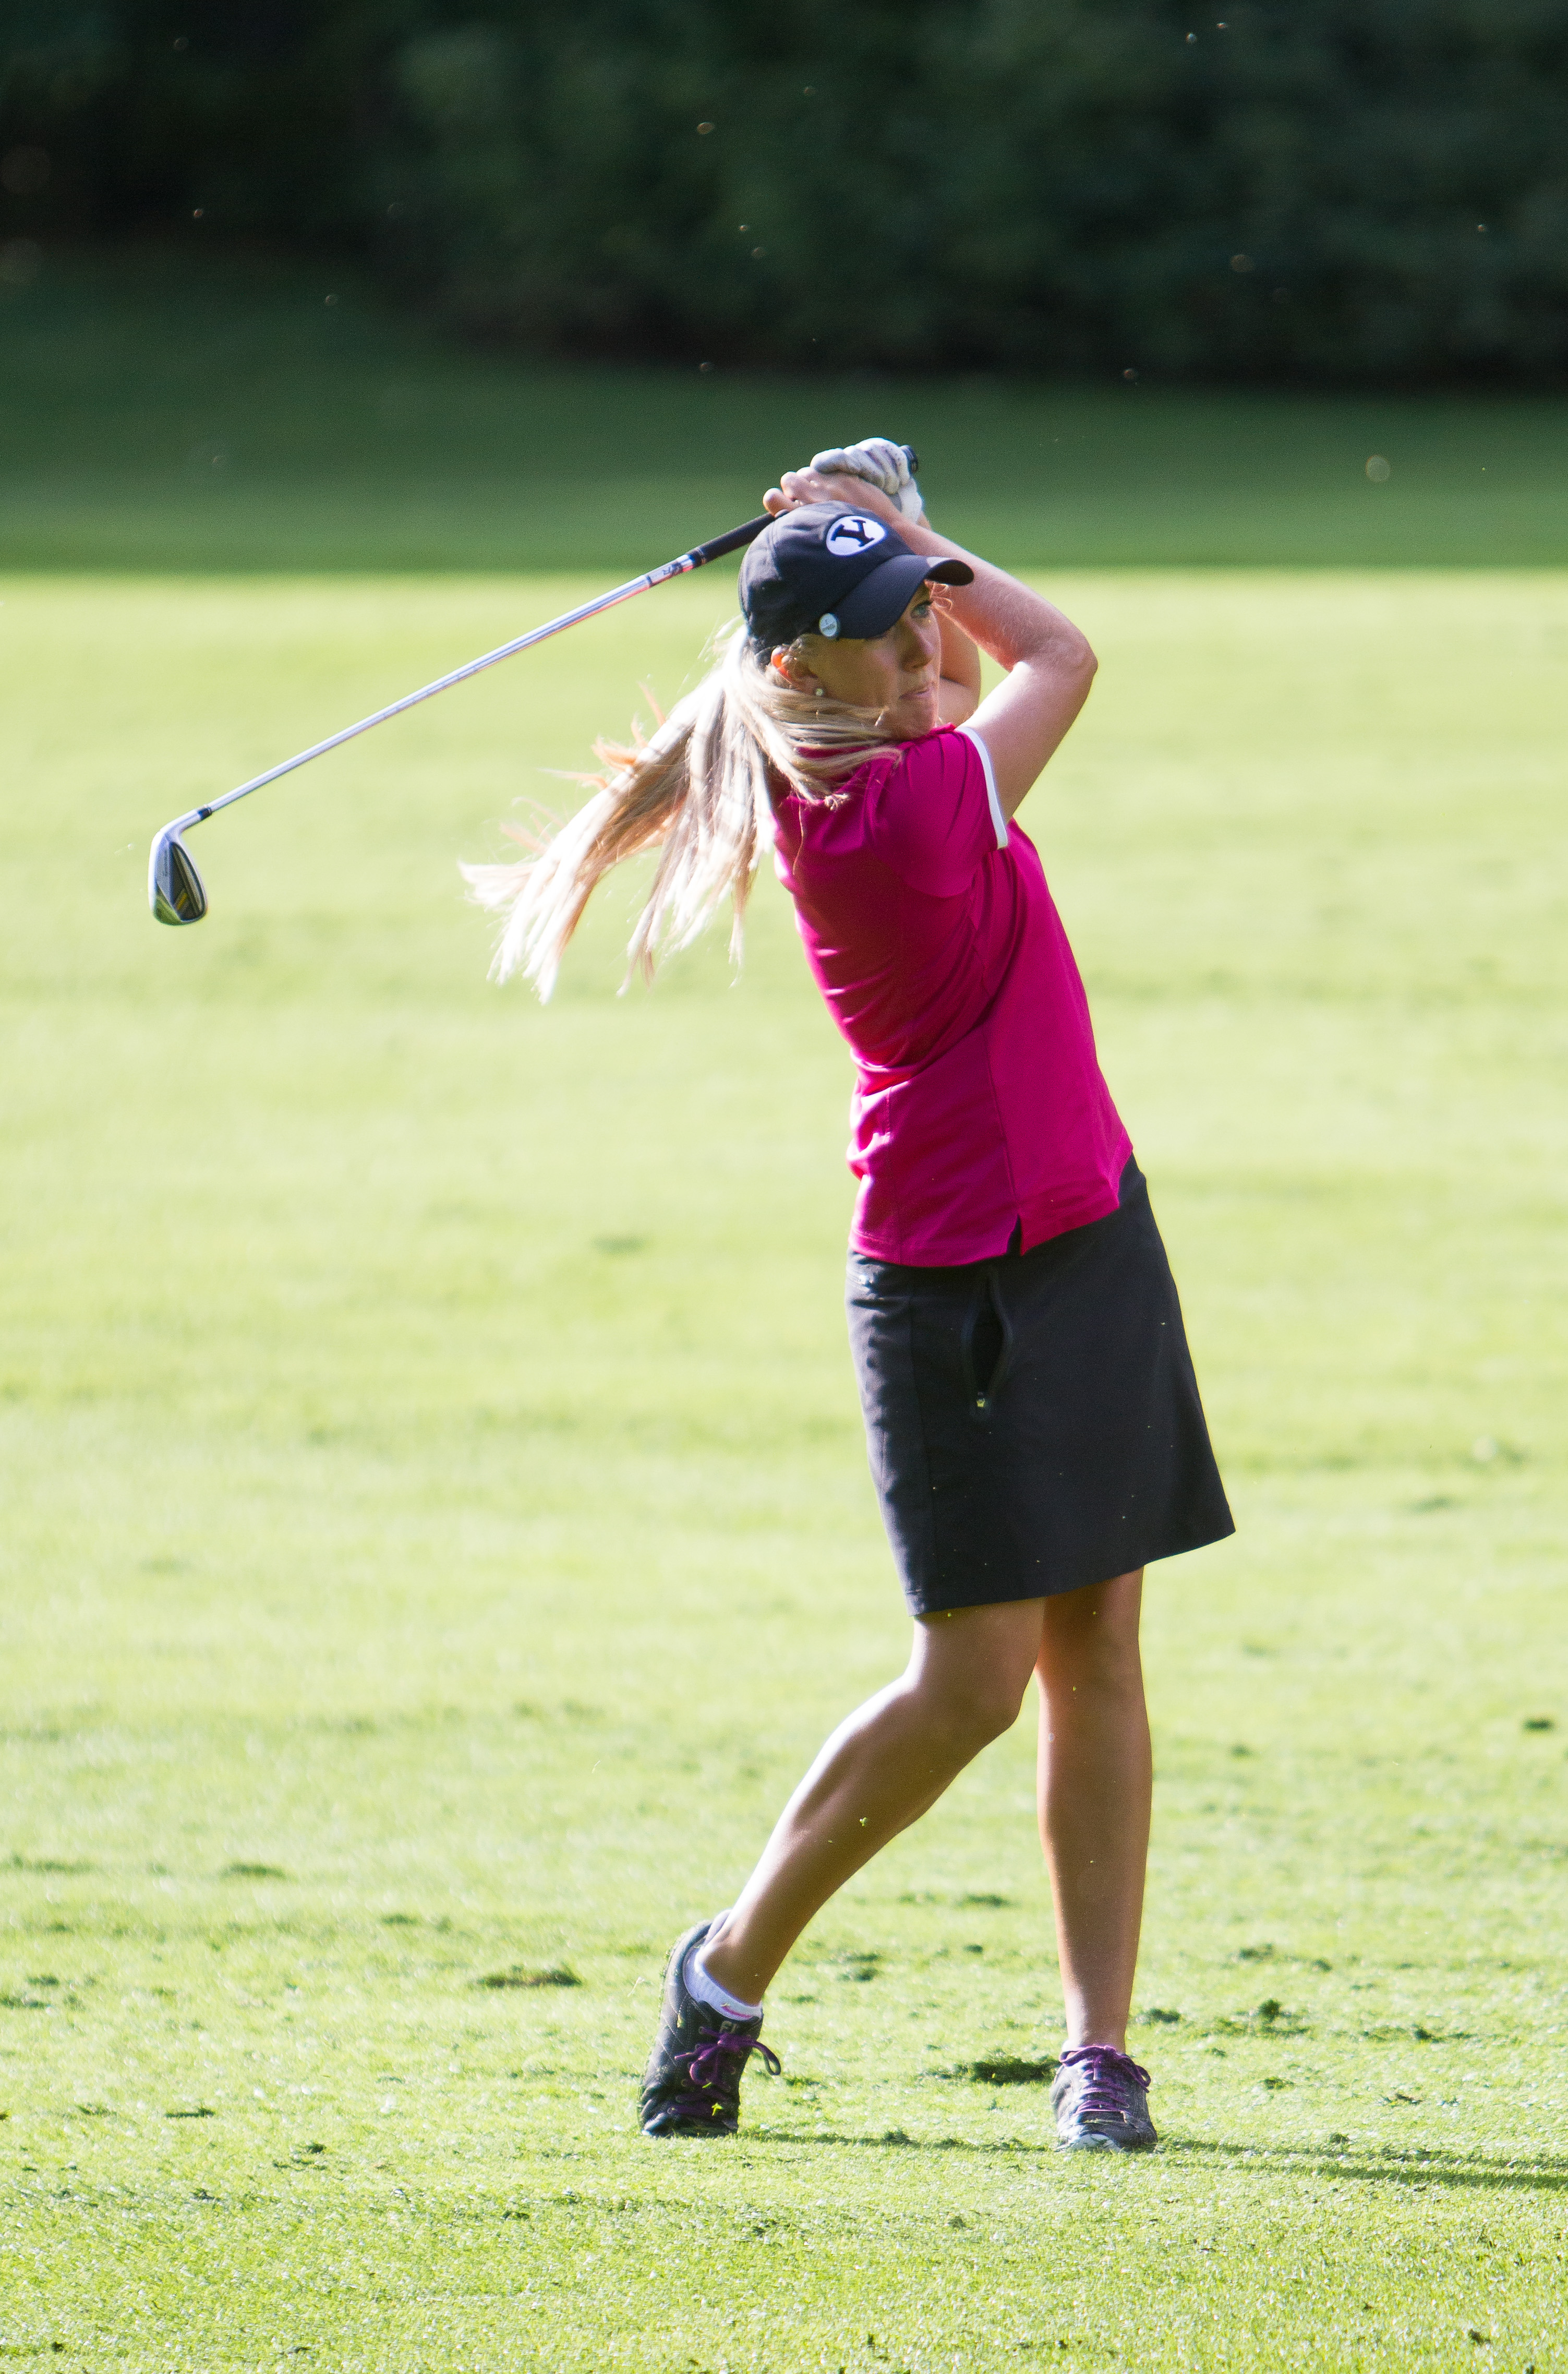 Brooklyn Anderson competes at the Hobble Creek Golf Course on Monday morning. (Photo by Sarah Hill.)